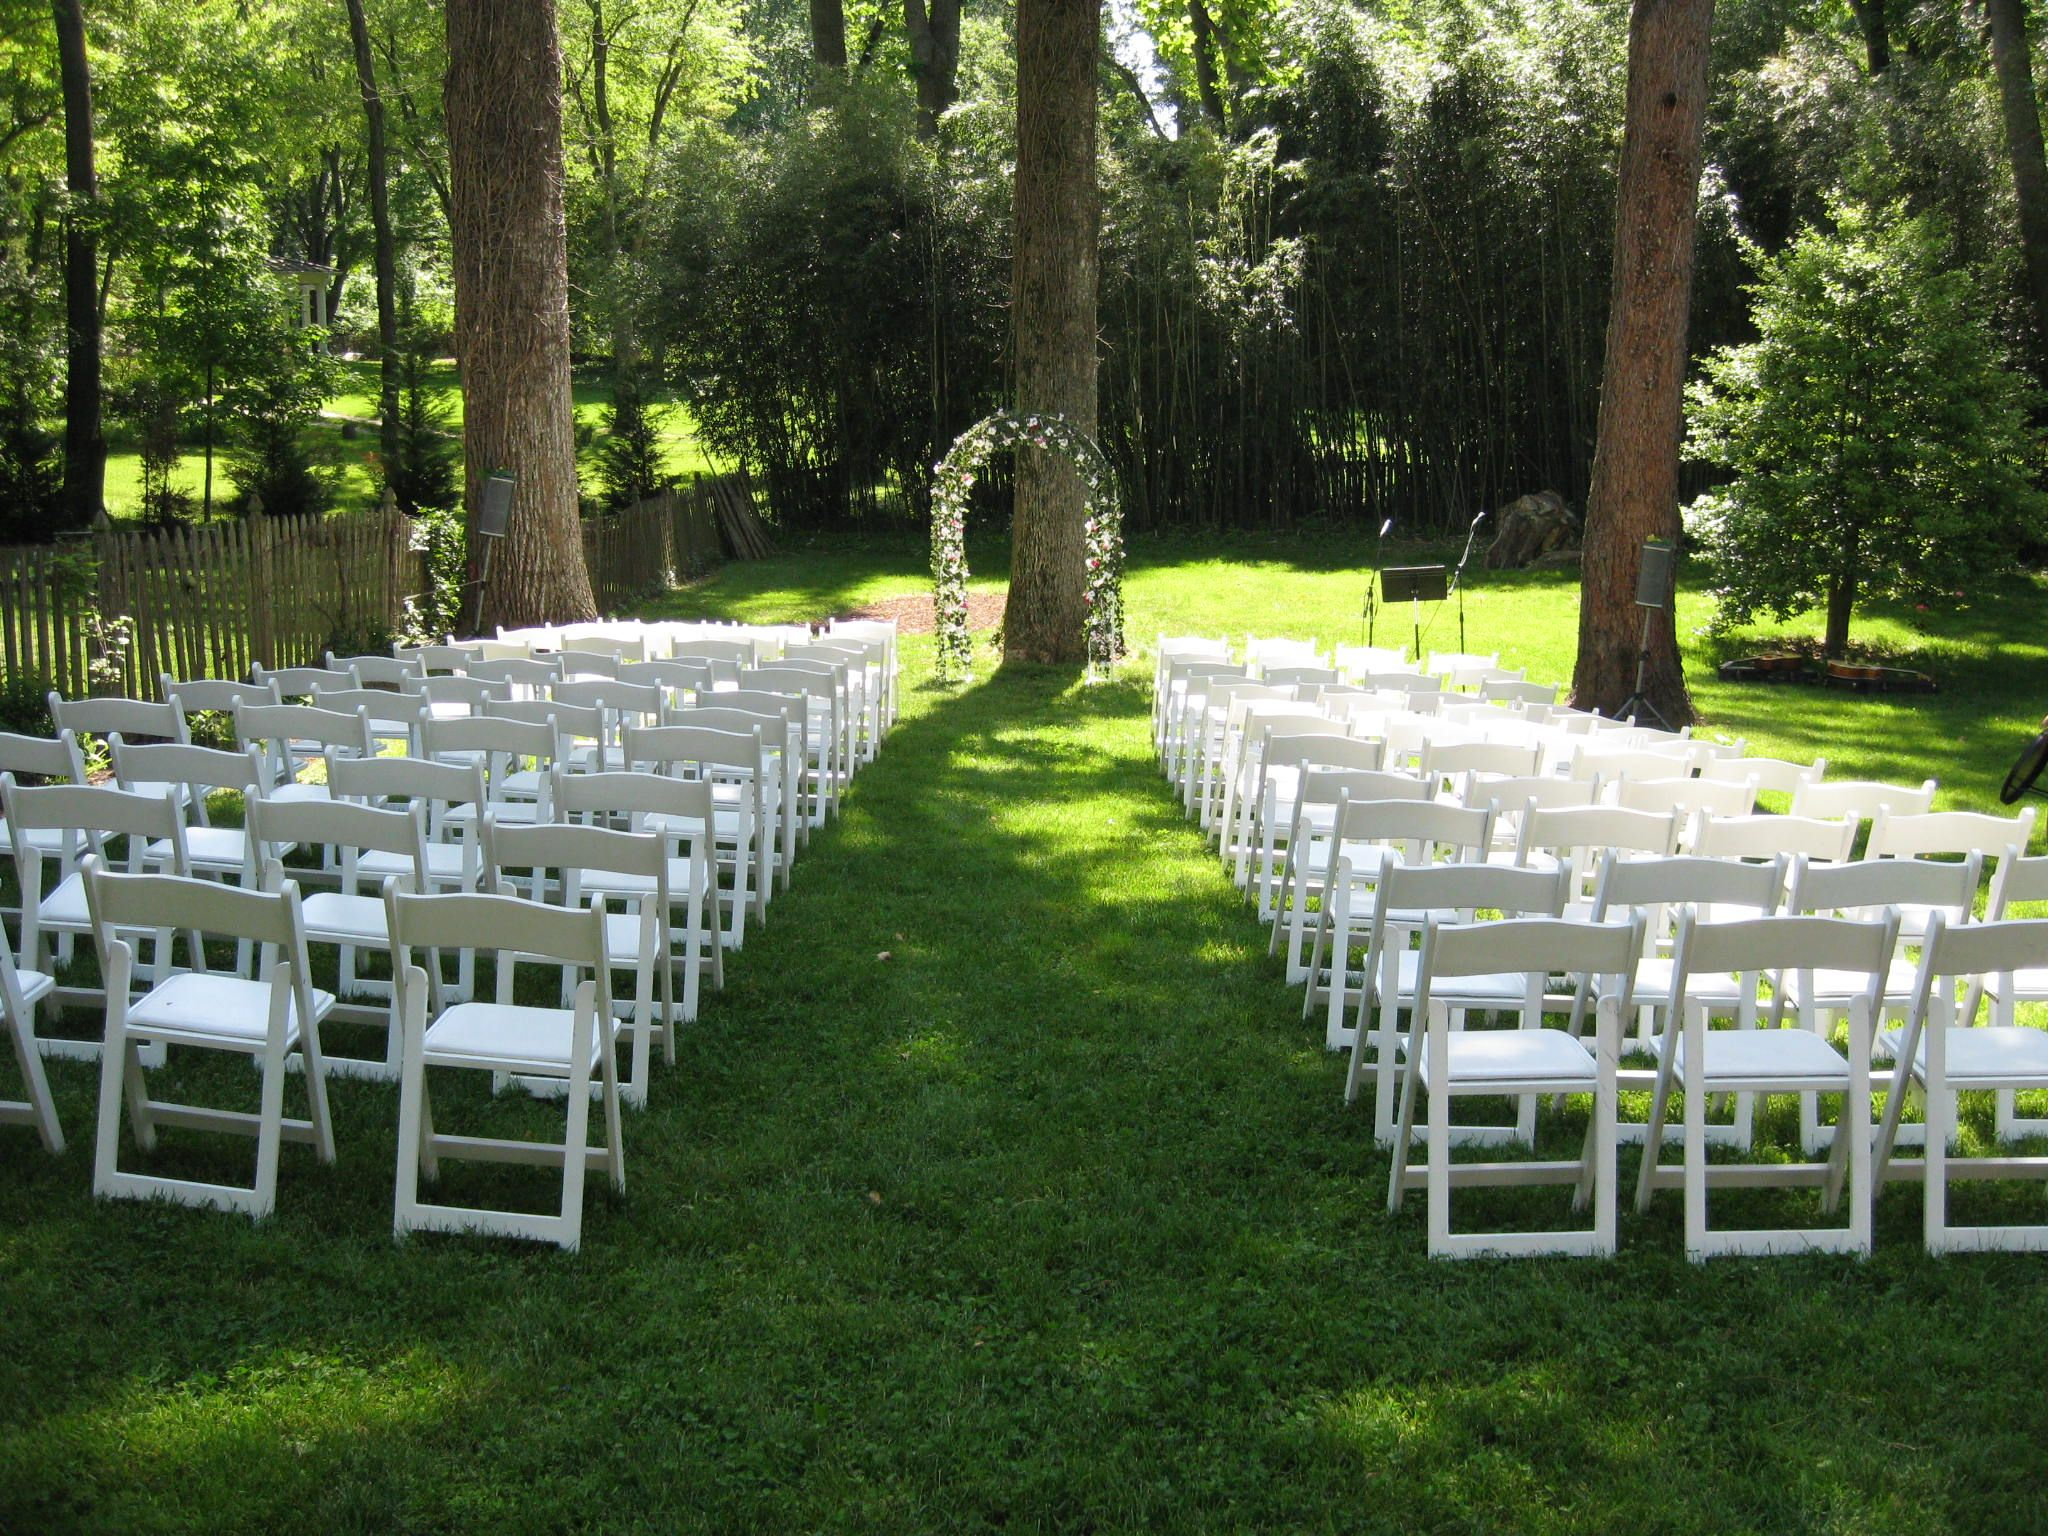 Beautiful Backyards Books Brothers Wedding May - Small backyard wedding ideas